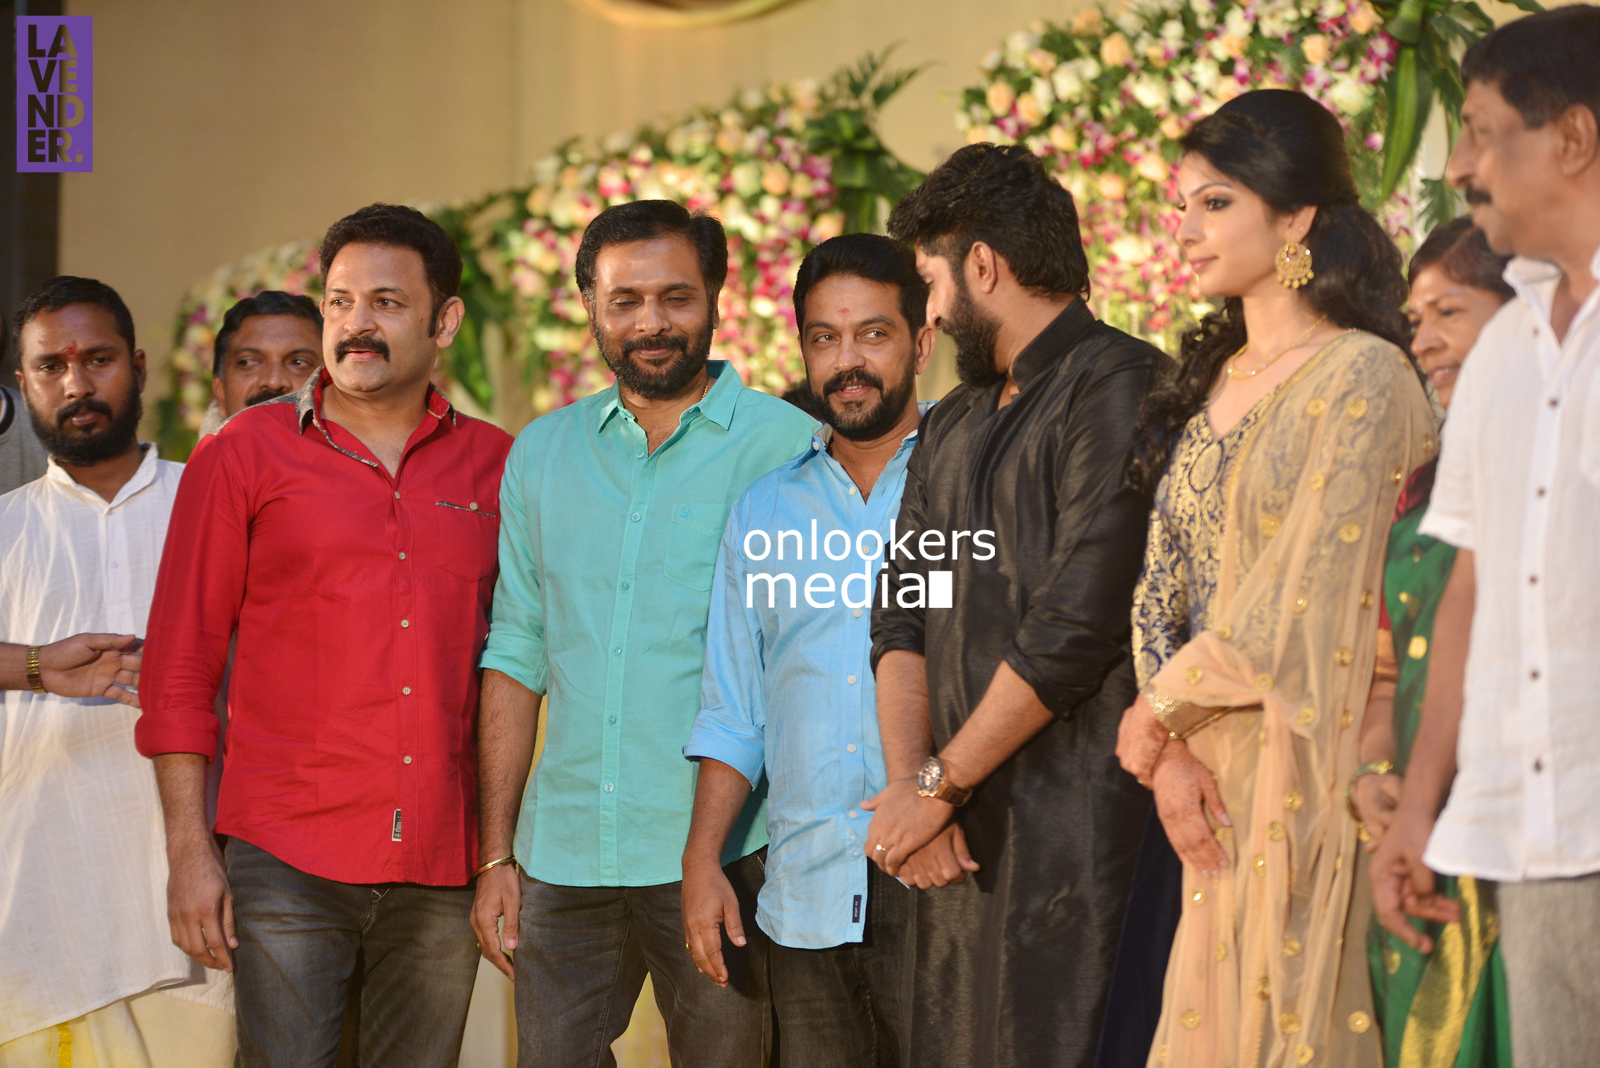 http://onlookersmedia.in/wp-content/uploads/2017/04/Dhyan-Sreenivasan-Wedding-Reception-Stills-Photo-28.jpg